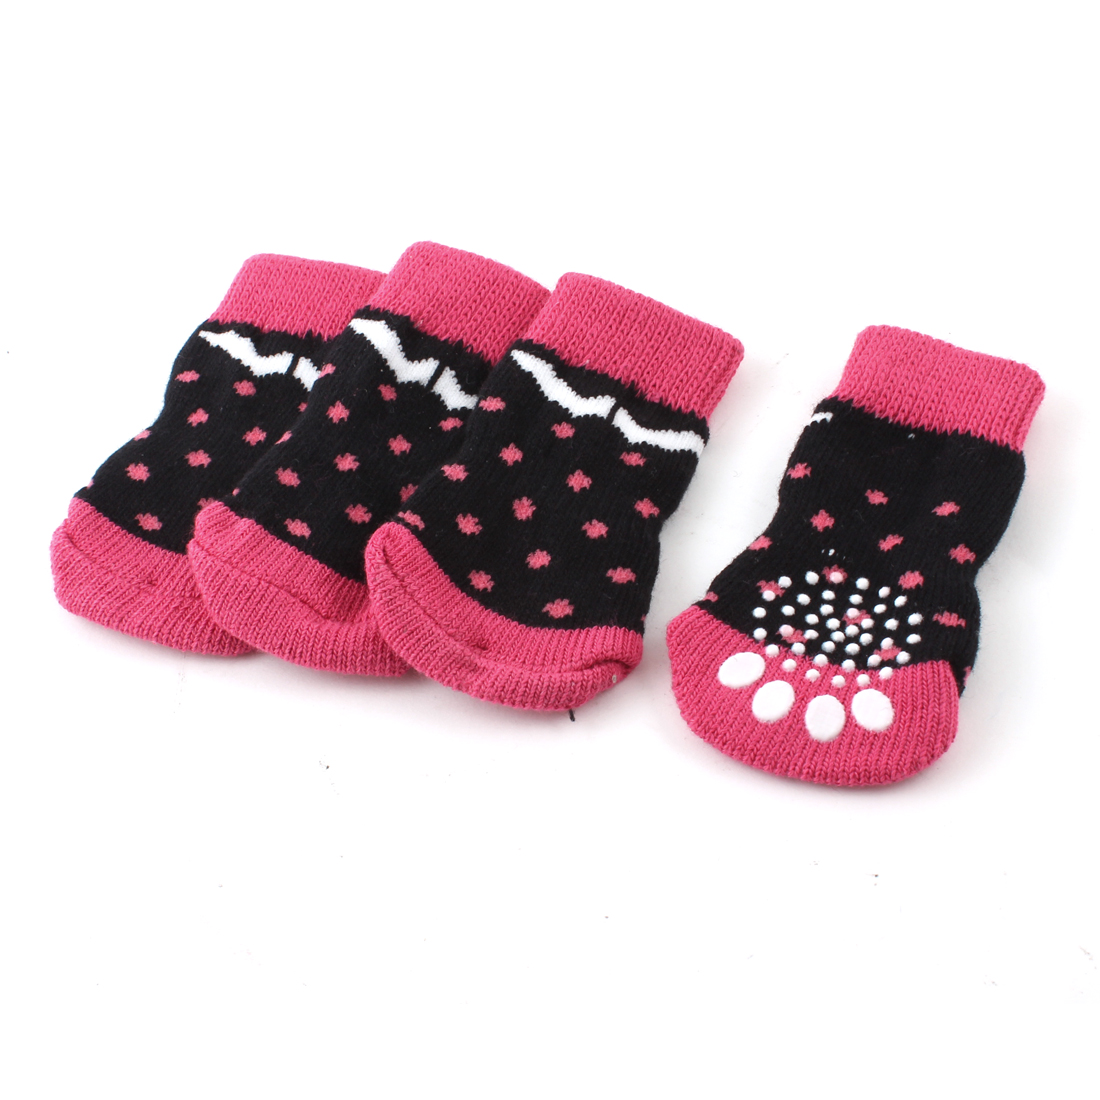 2 Pairs Black Fuchsia Knitted Elastic Paw Pattern Pet Dog Cat Puppy Socks L